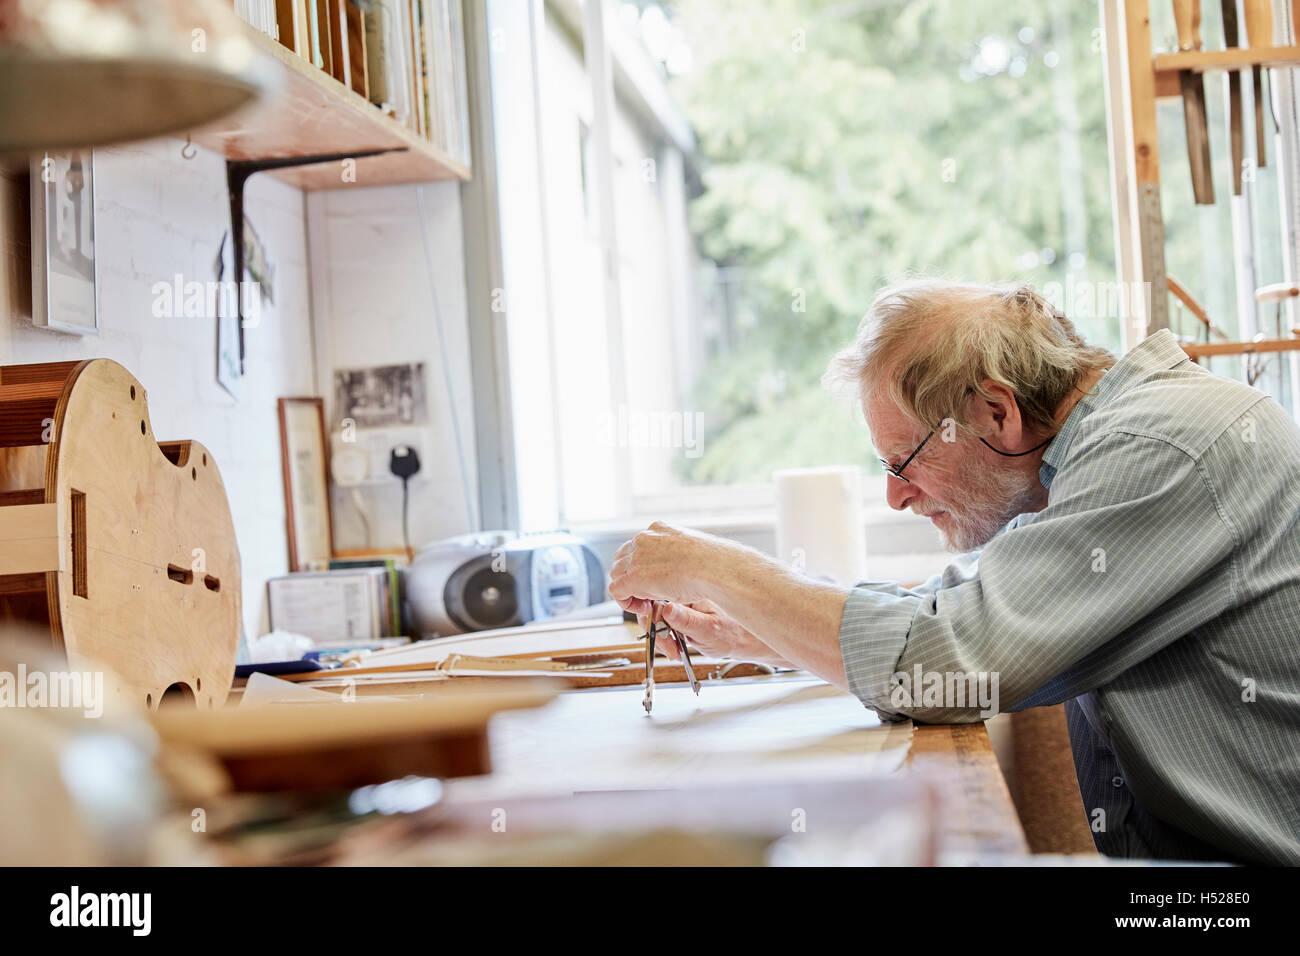 A violin maker at his drawing board drawing out the plans and outline for a new instrument. - Stock Image